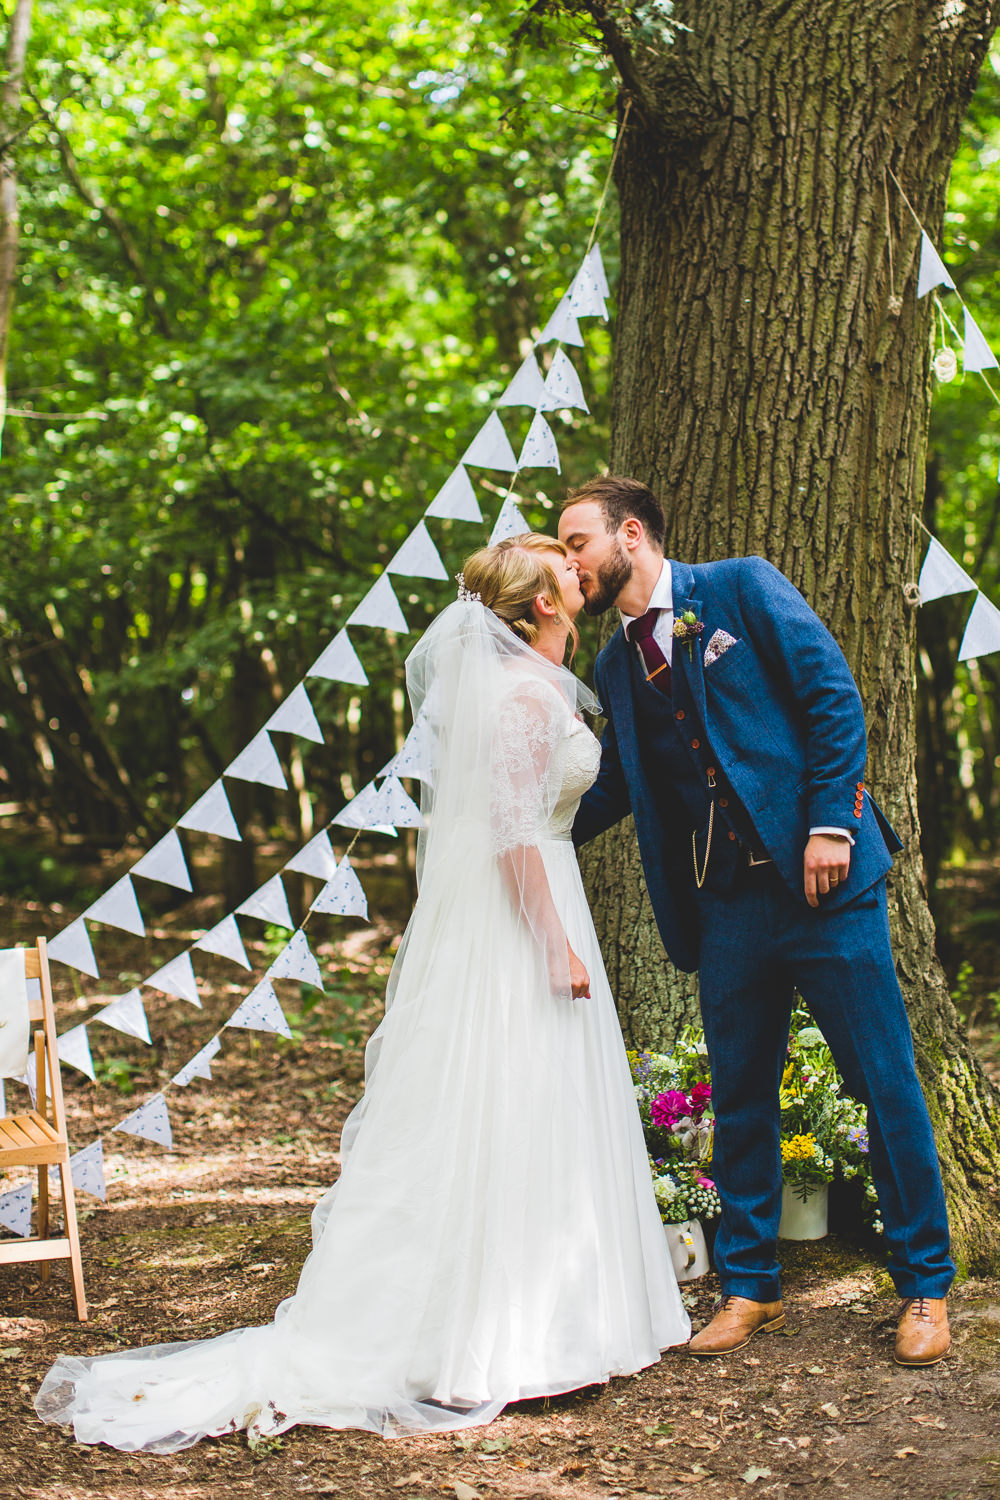 Bride Bridal Dress Gown V Neck Lace Sleeve Layered Veil Three Piece Tweed Groom Bunting Wise Wedding Venue Livvy Hukins Photography